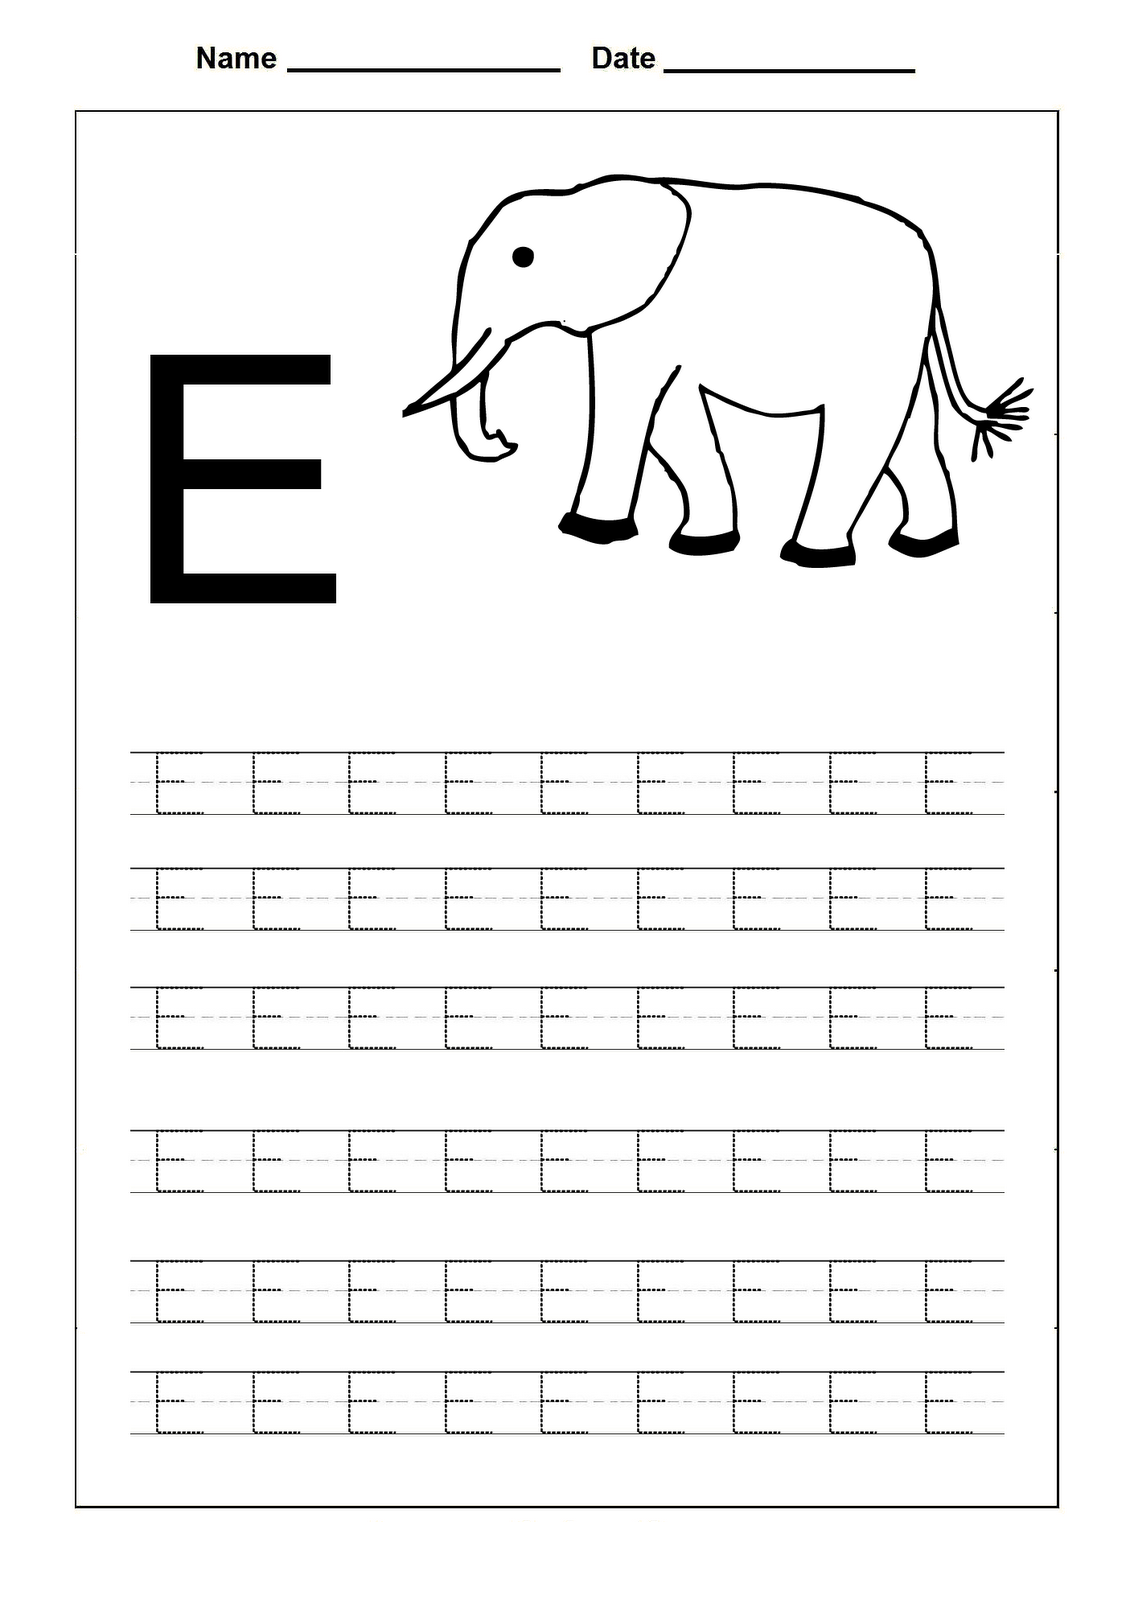 Free Worksheet Letter E Worksheets For Preschool letter e tracing worksheets rringband alphabet uk page abcs tracer